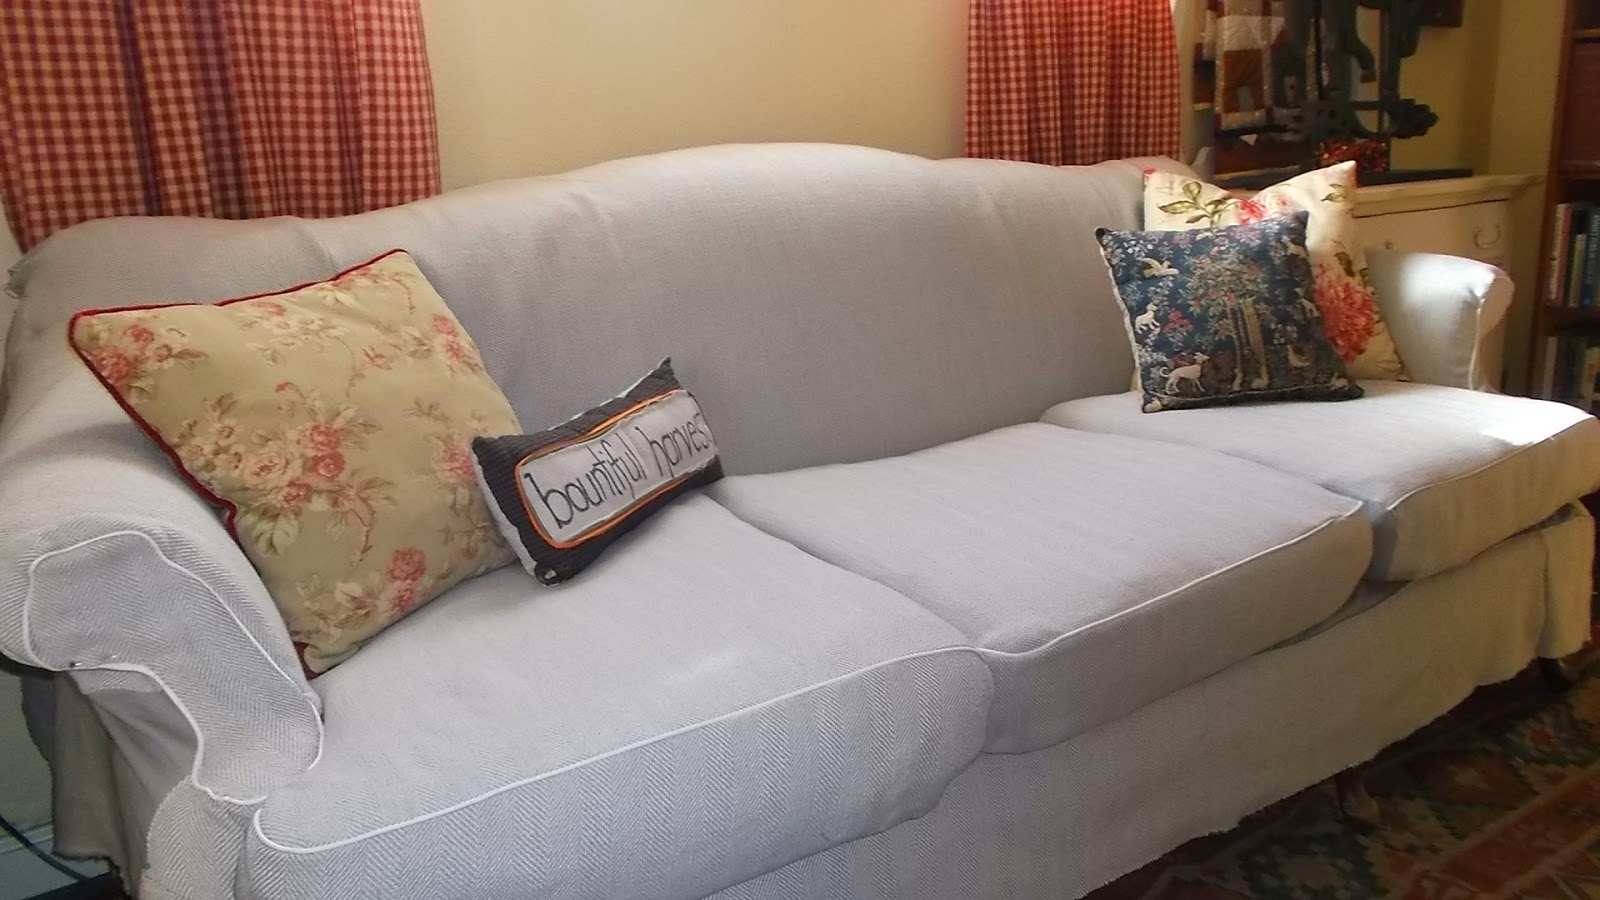 Camelback Sofa Cover Reclining Electric Living A Cottage Life: Camel Back Slipcover, Part 2